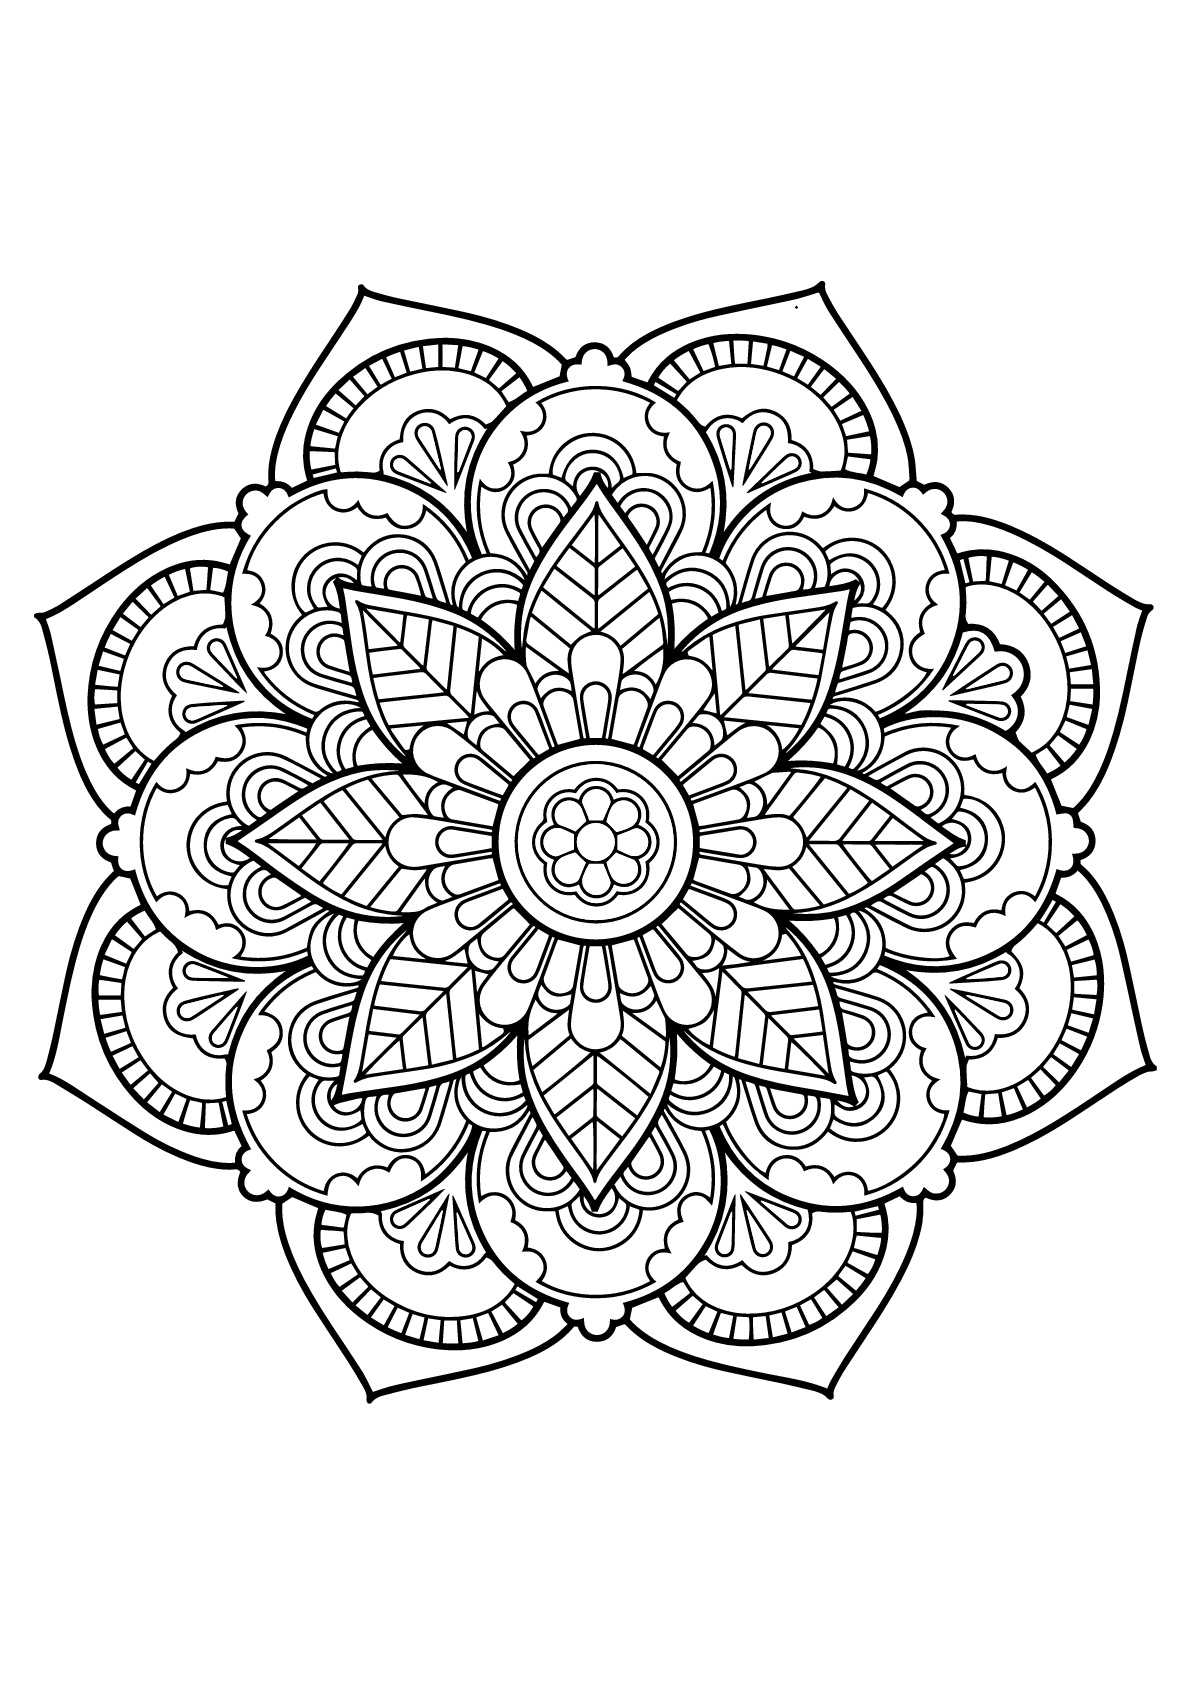 free printable mandalas for adults free printable mandala coloring book pages for adults and kids mandalas printable free adults for